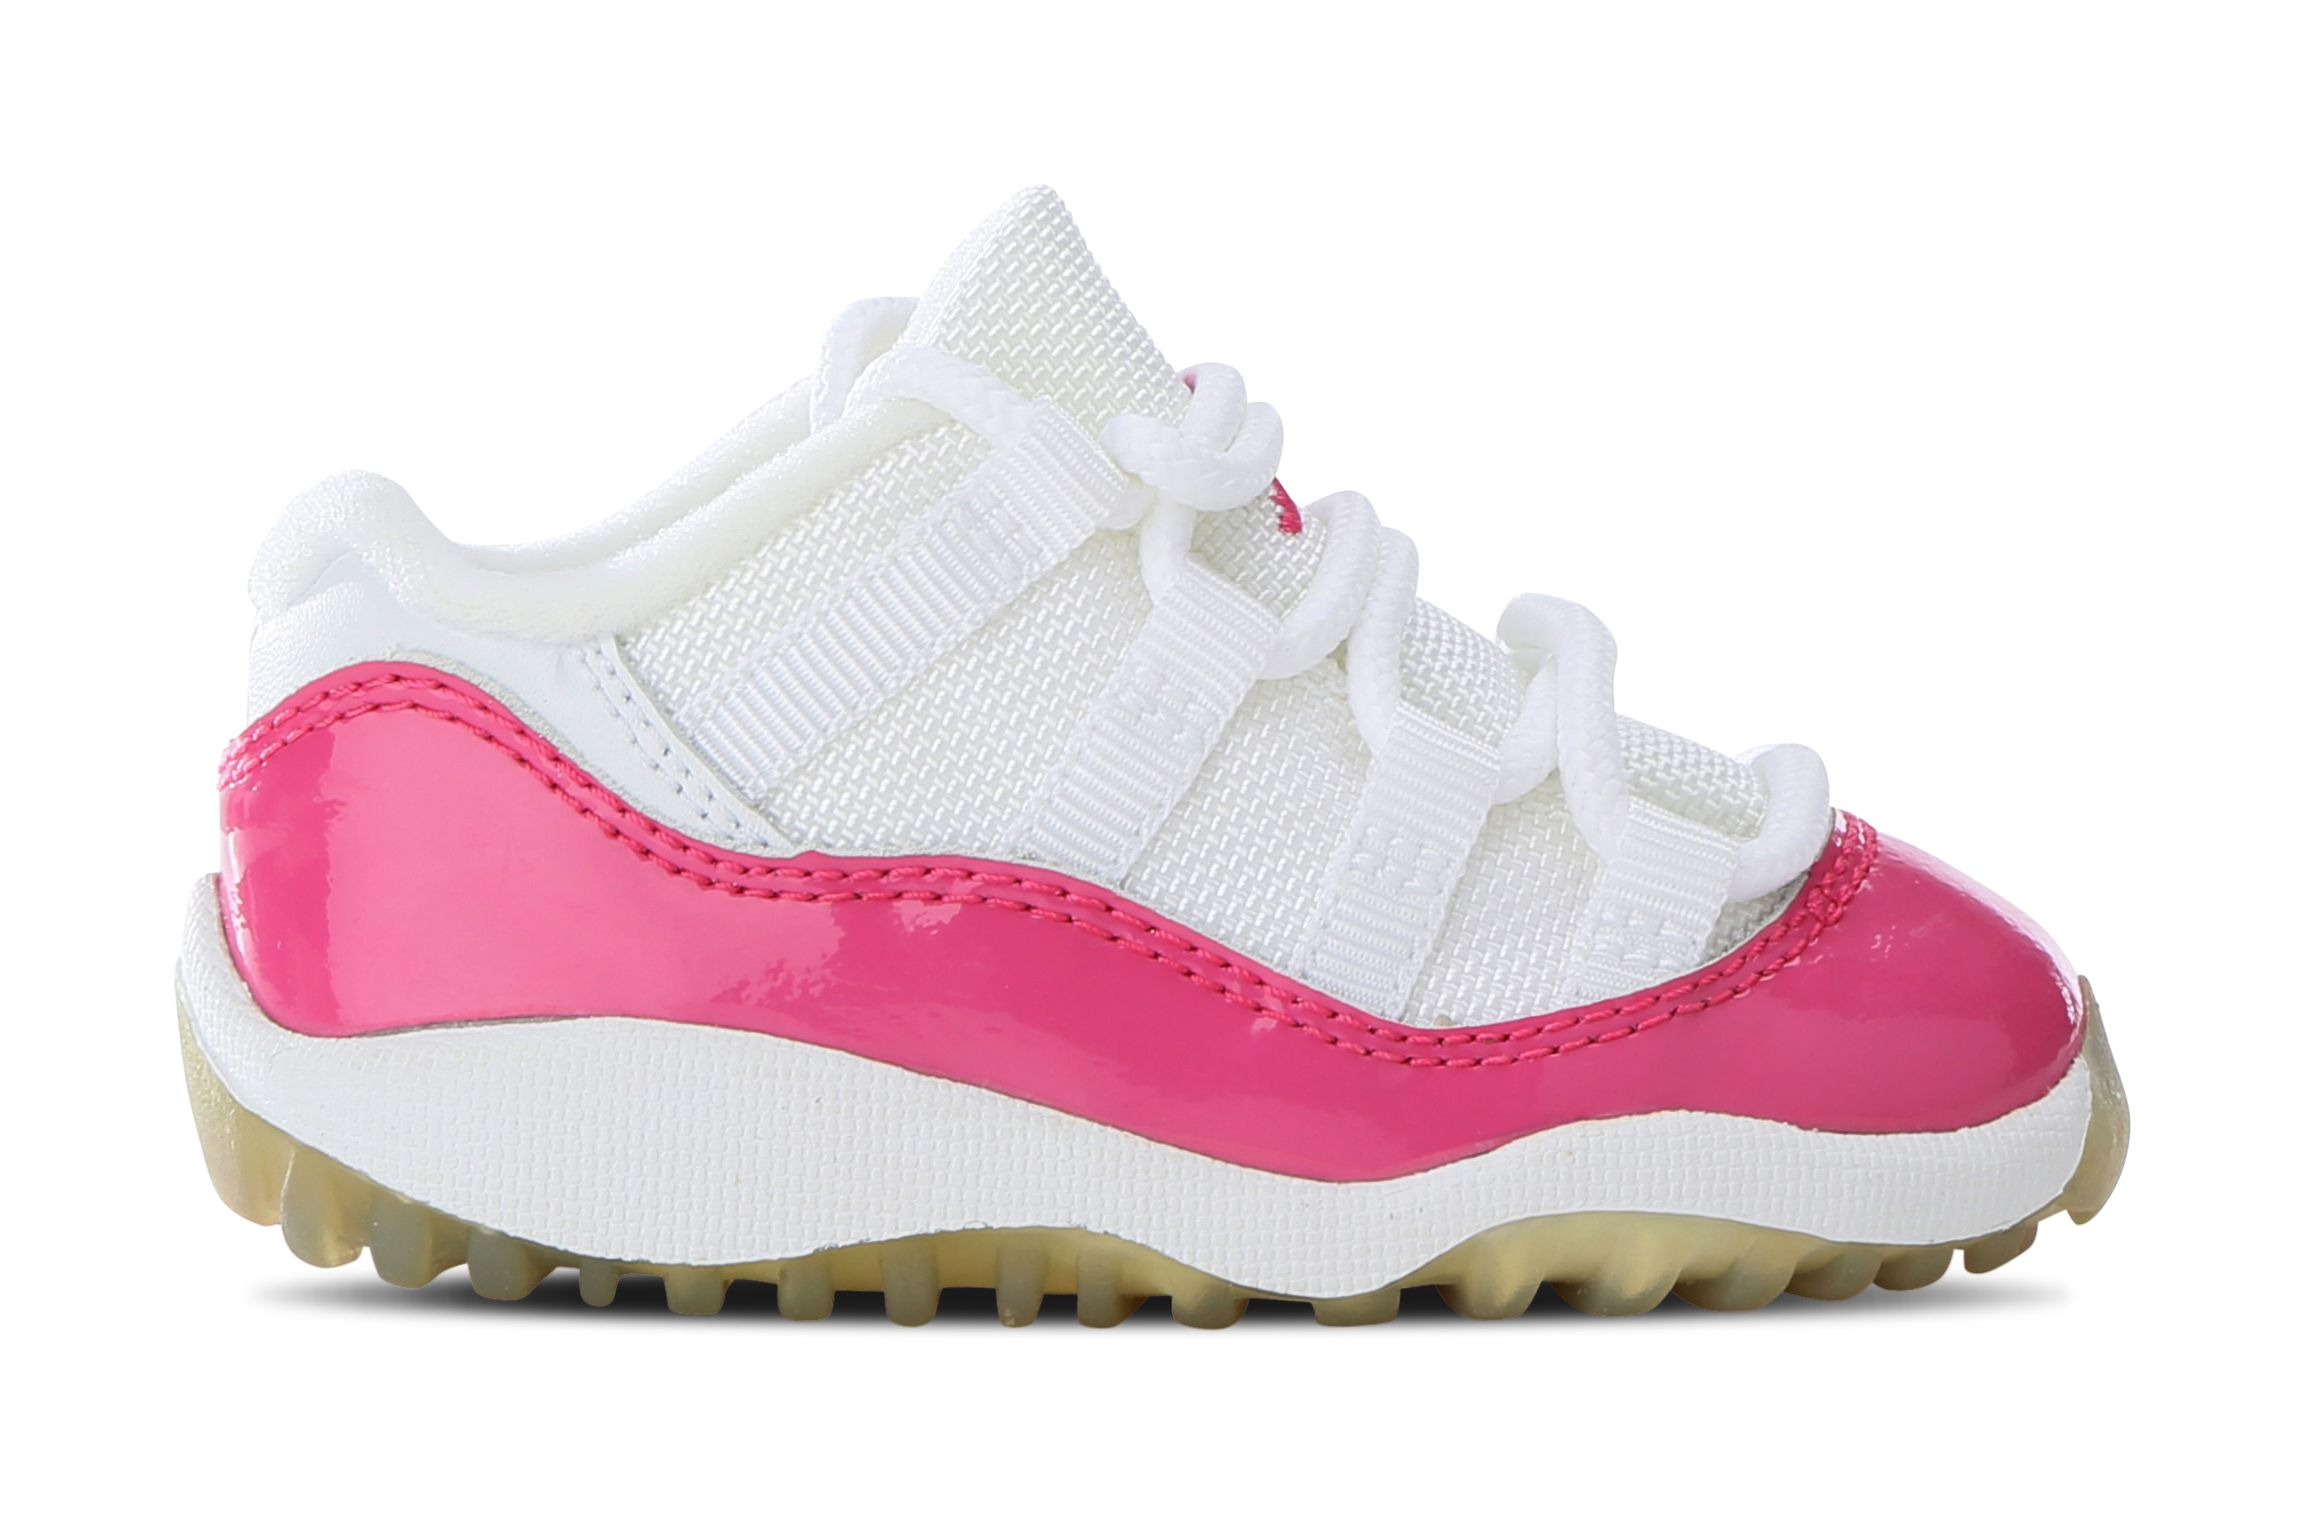 Busy Leung Air Jordan 11 Kids Pink Patent